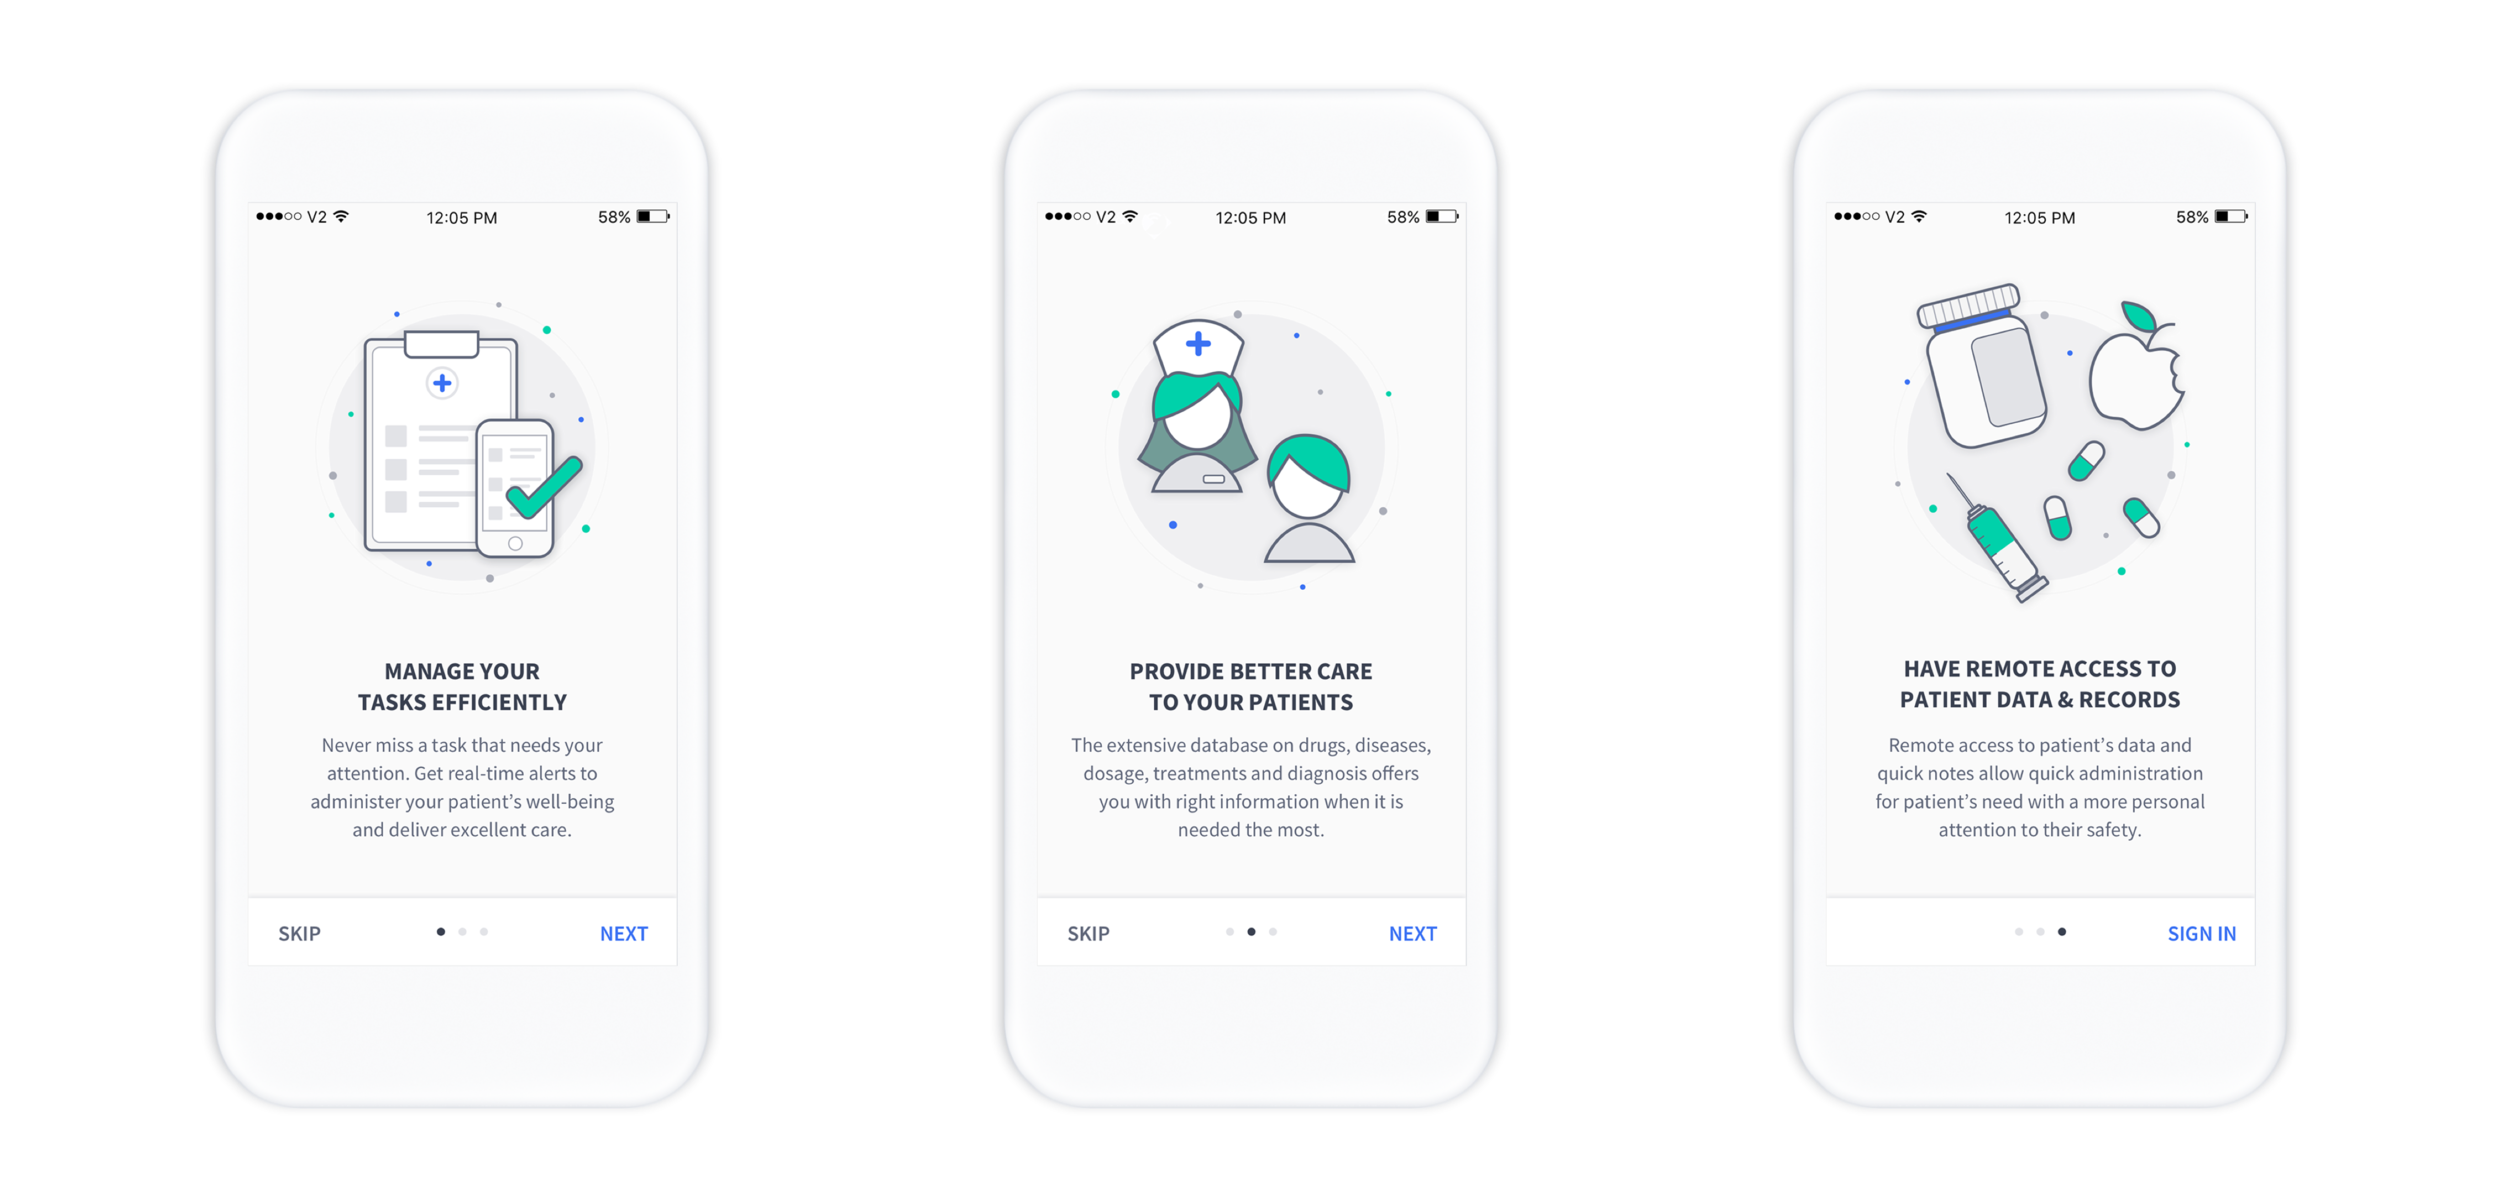 onboarding app images.png